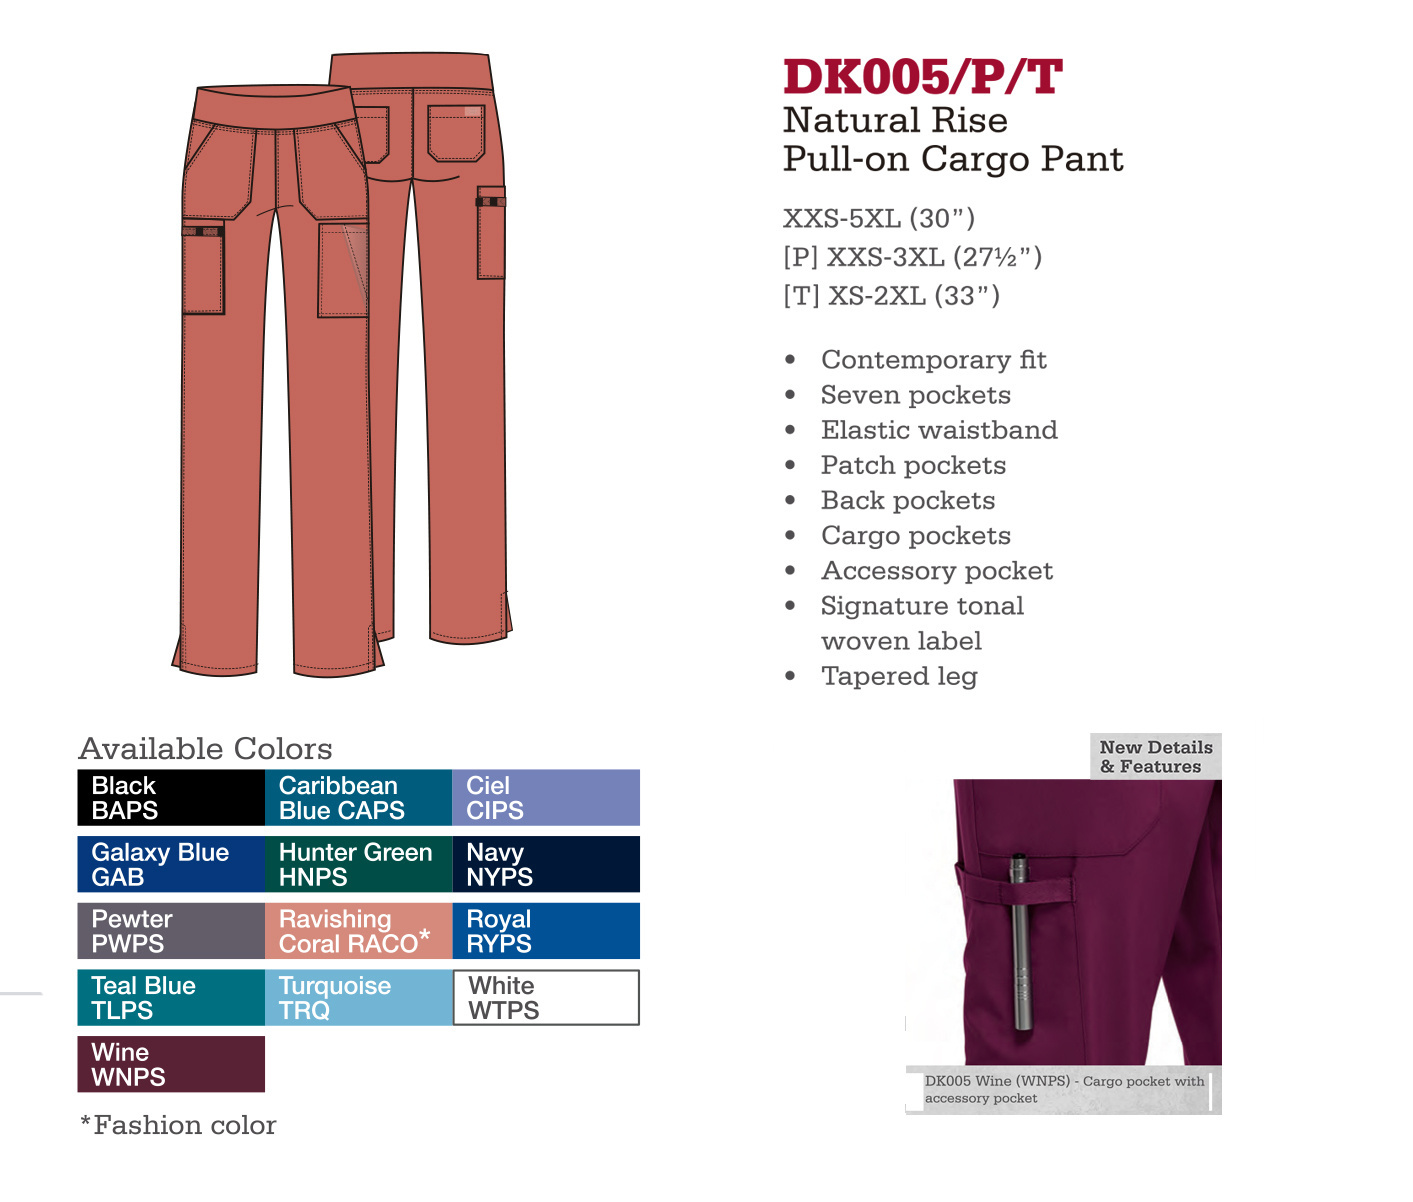 Pantalón Cargo Pull-on de Levantado Natural. DK005/P/T.